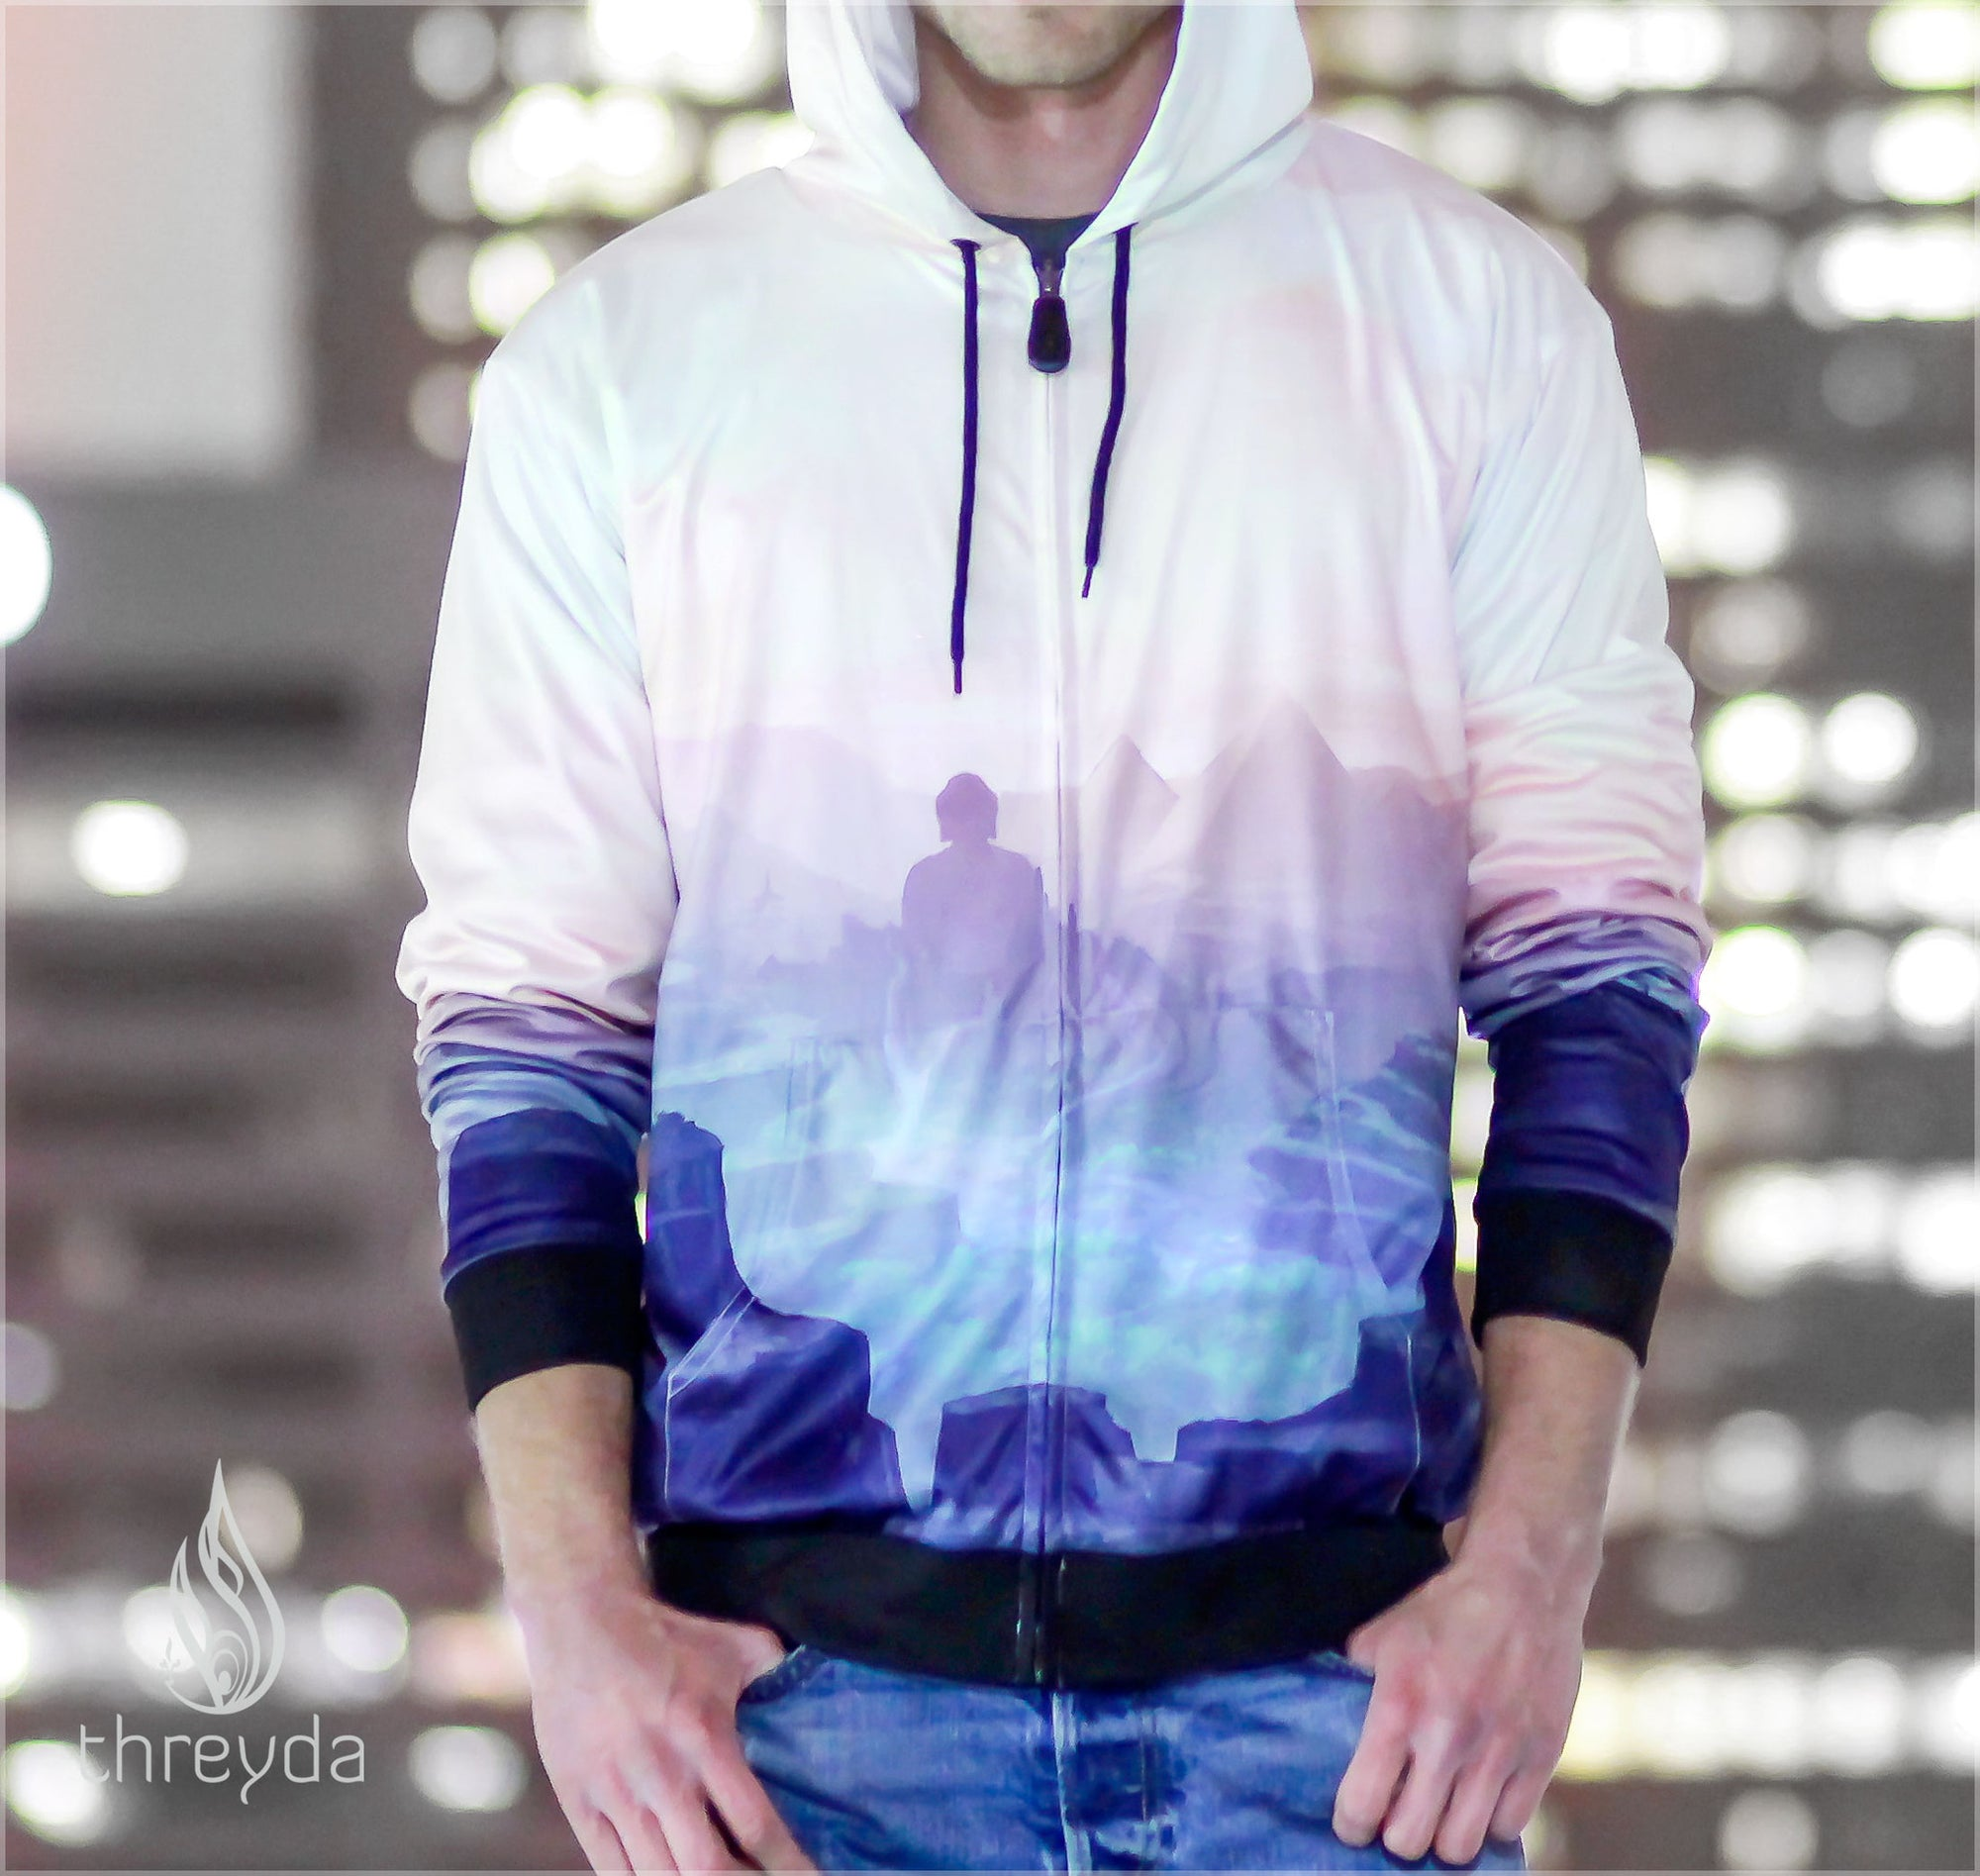 Kensho Dreams Reversible Satin Jacket by Justin Totemical , Apparel - Justin Totemical, Threyda - 3